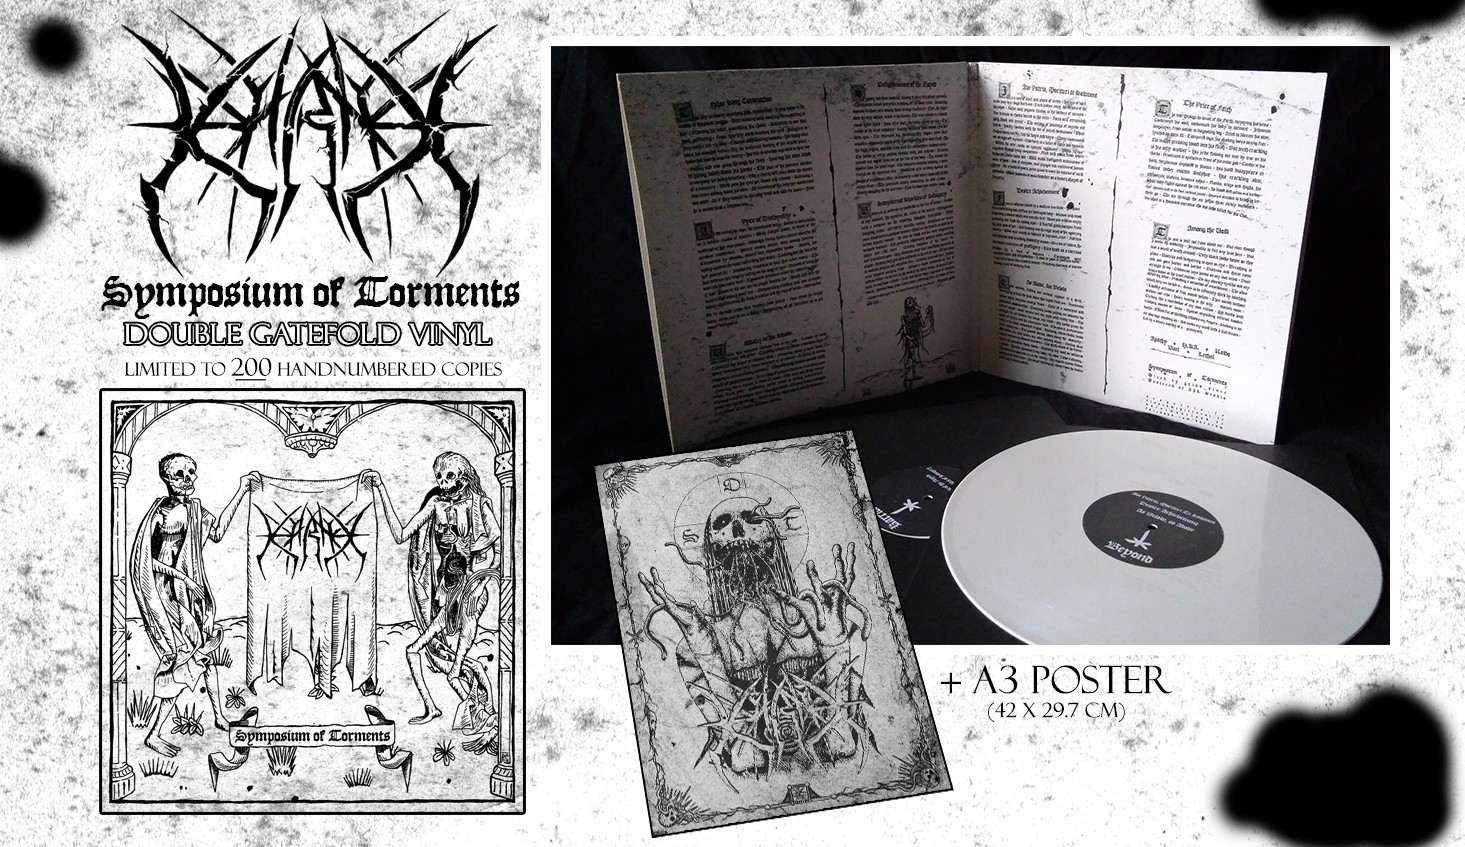 KARNE - SYMPOSIUM OF TORMENTS (DOUBLE LP)